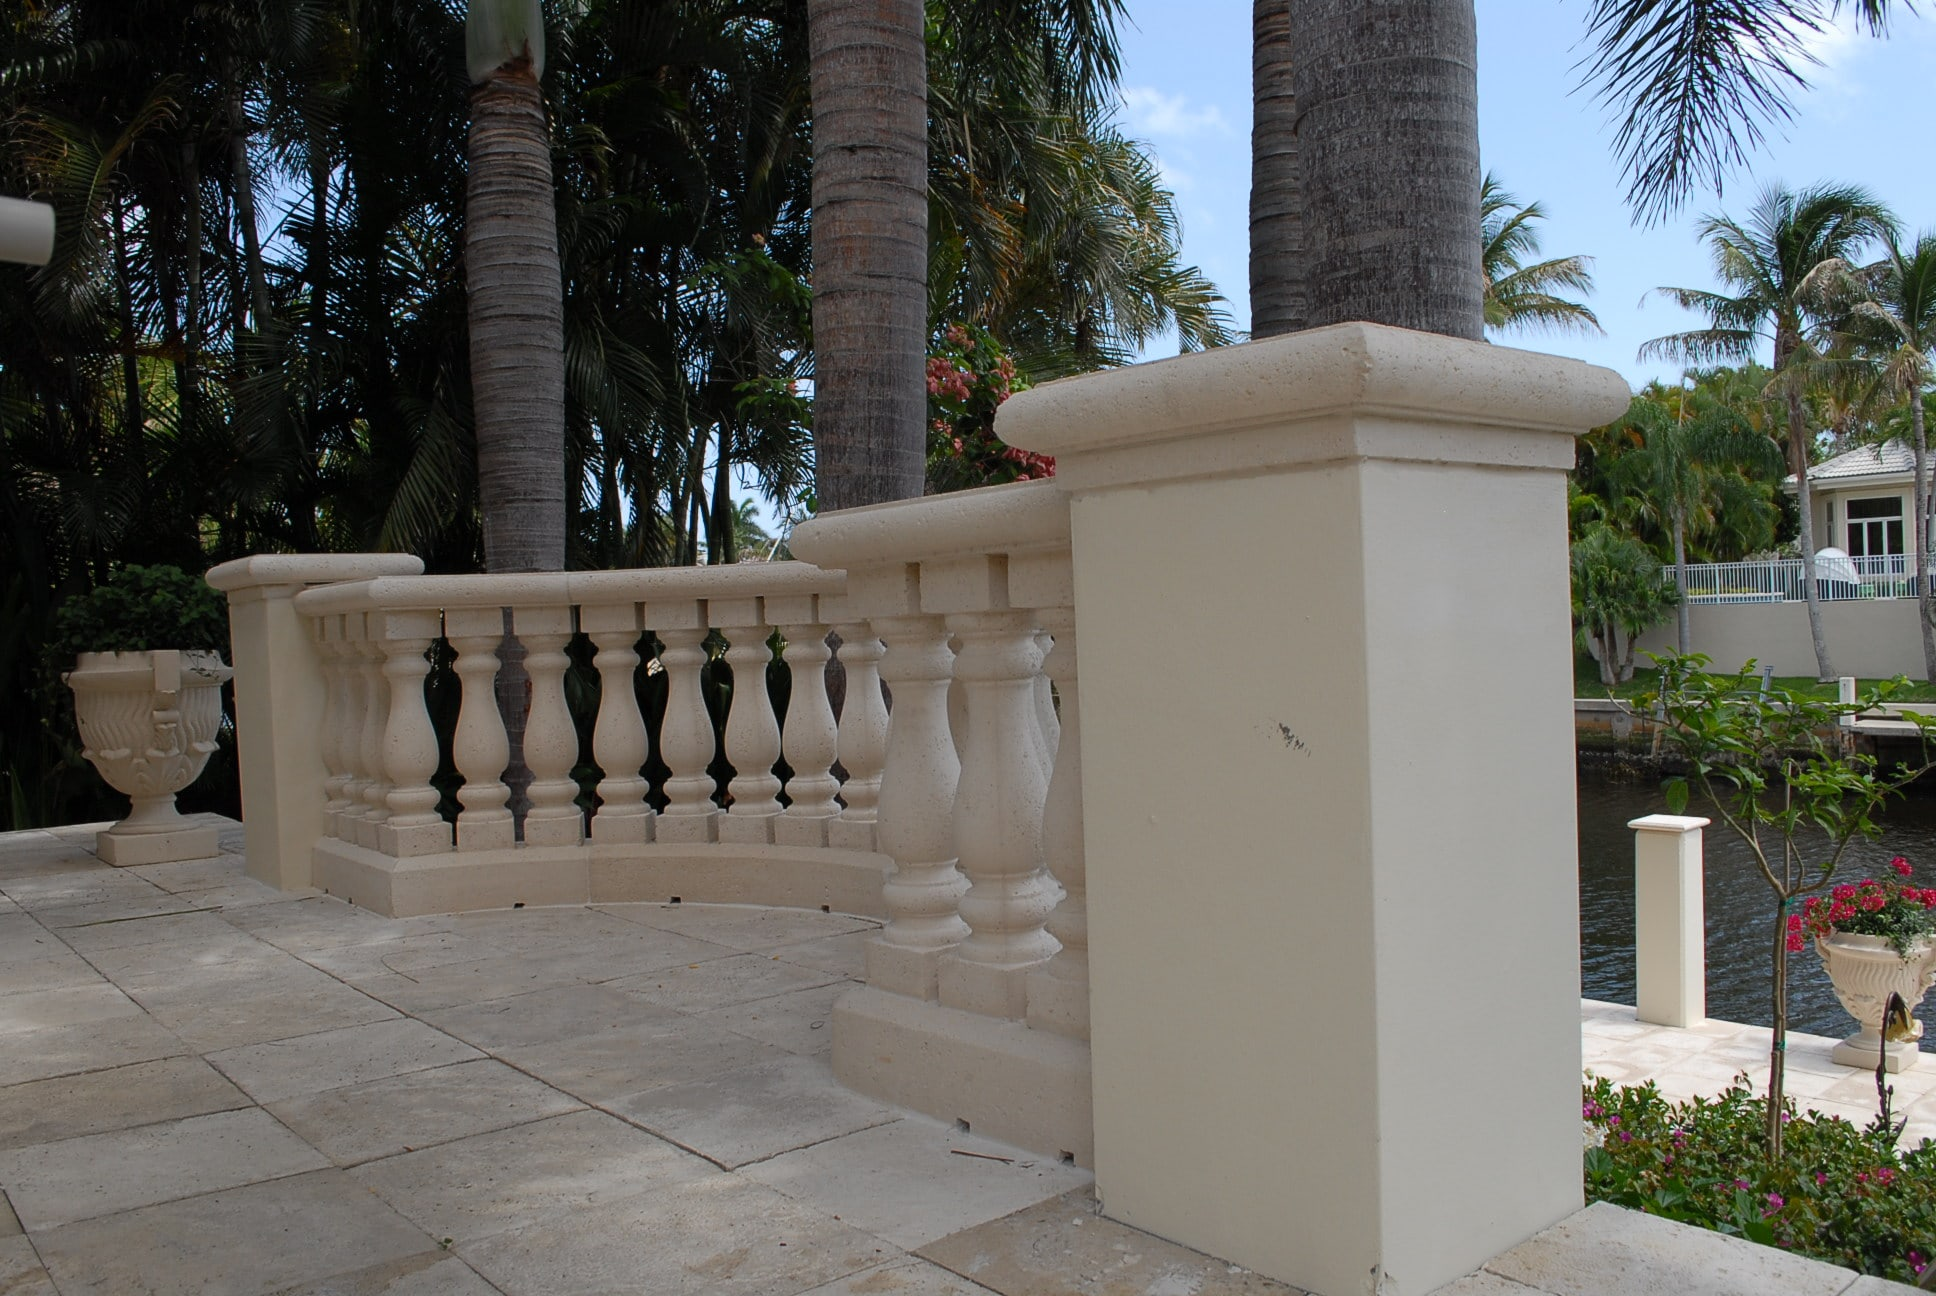 balusters 23